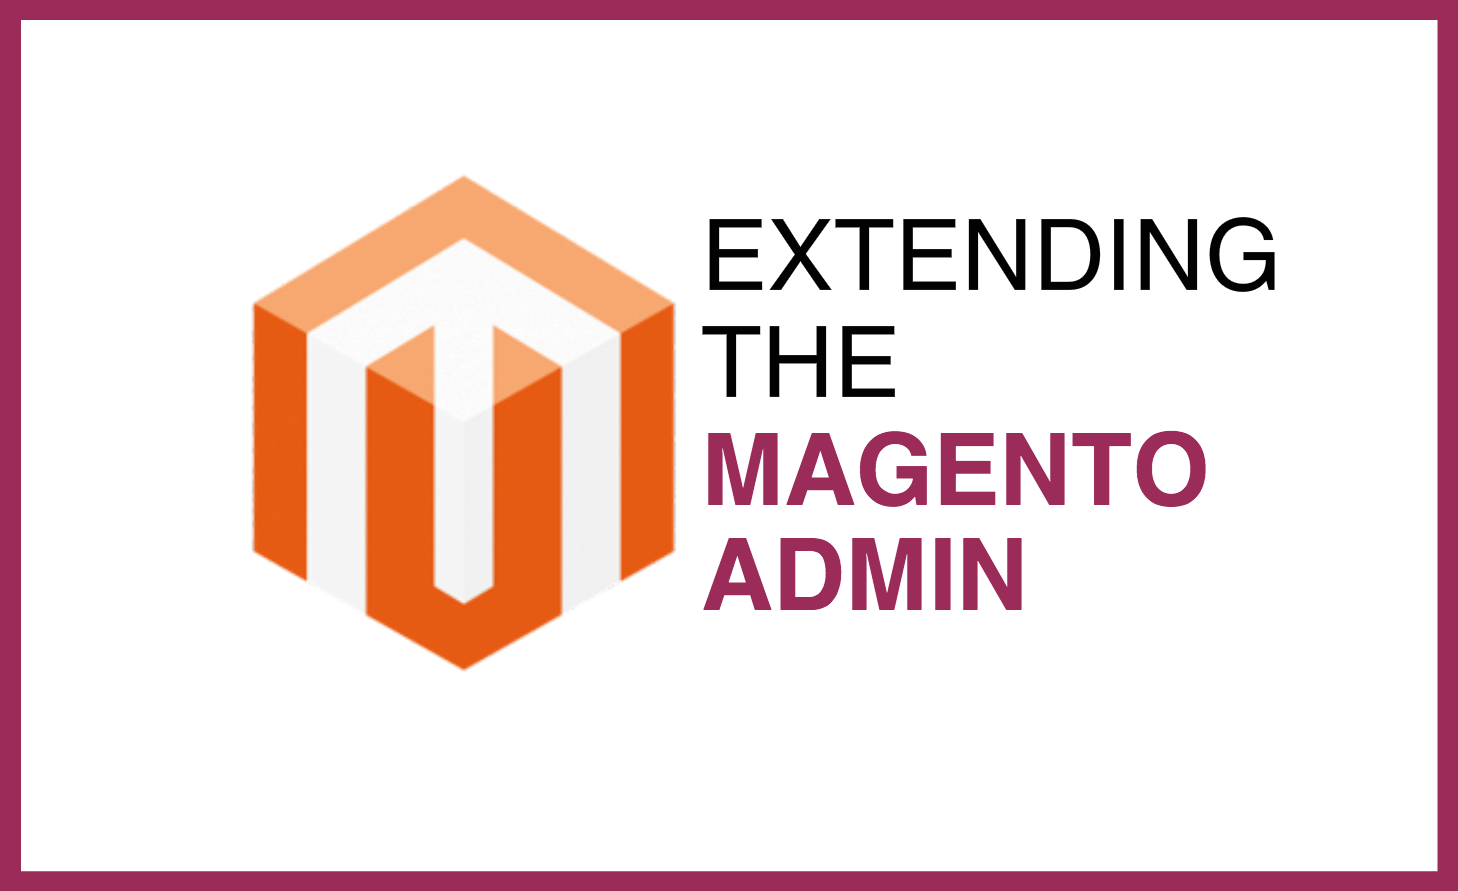 extending magento admin.png